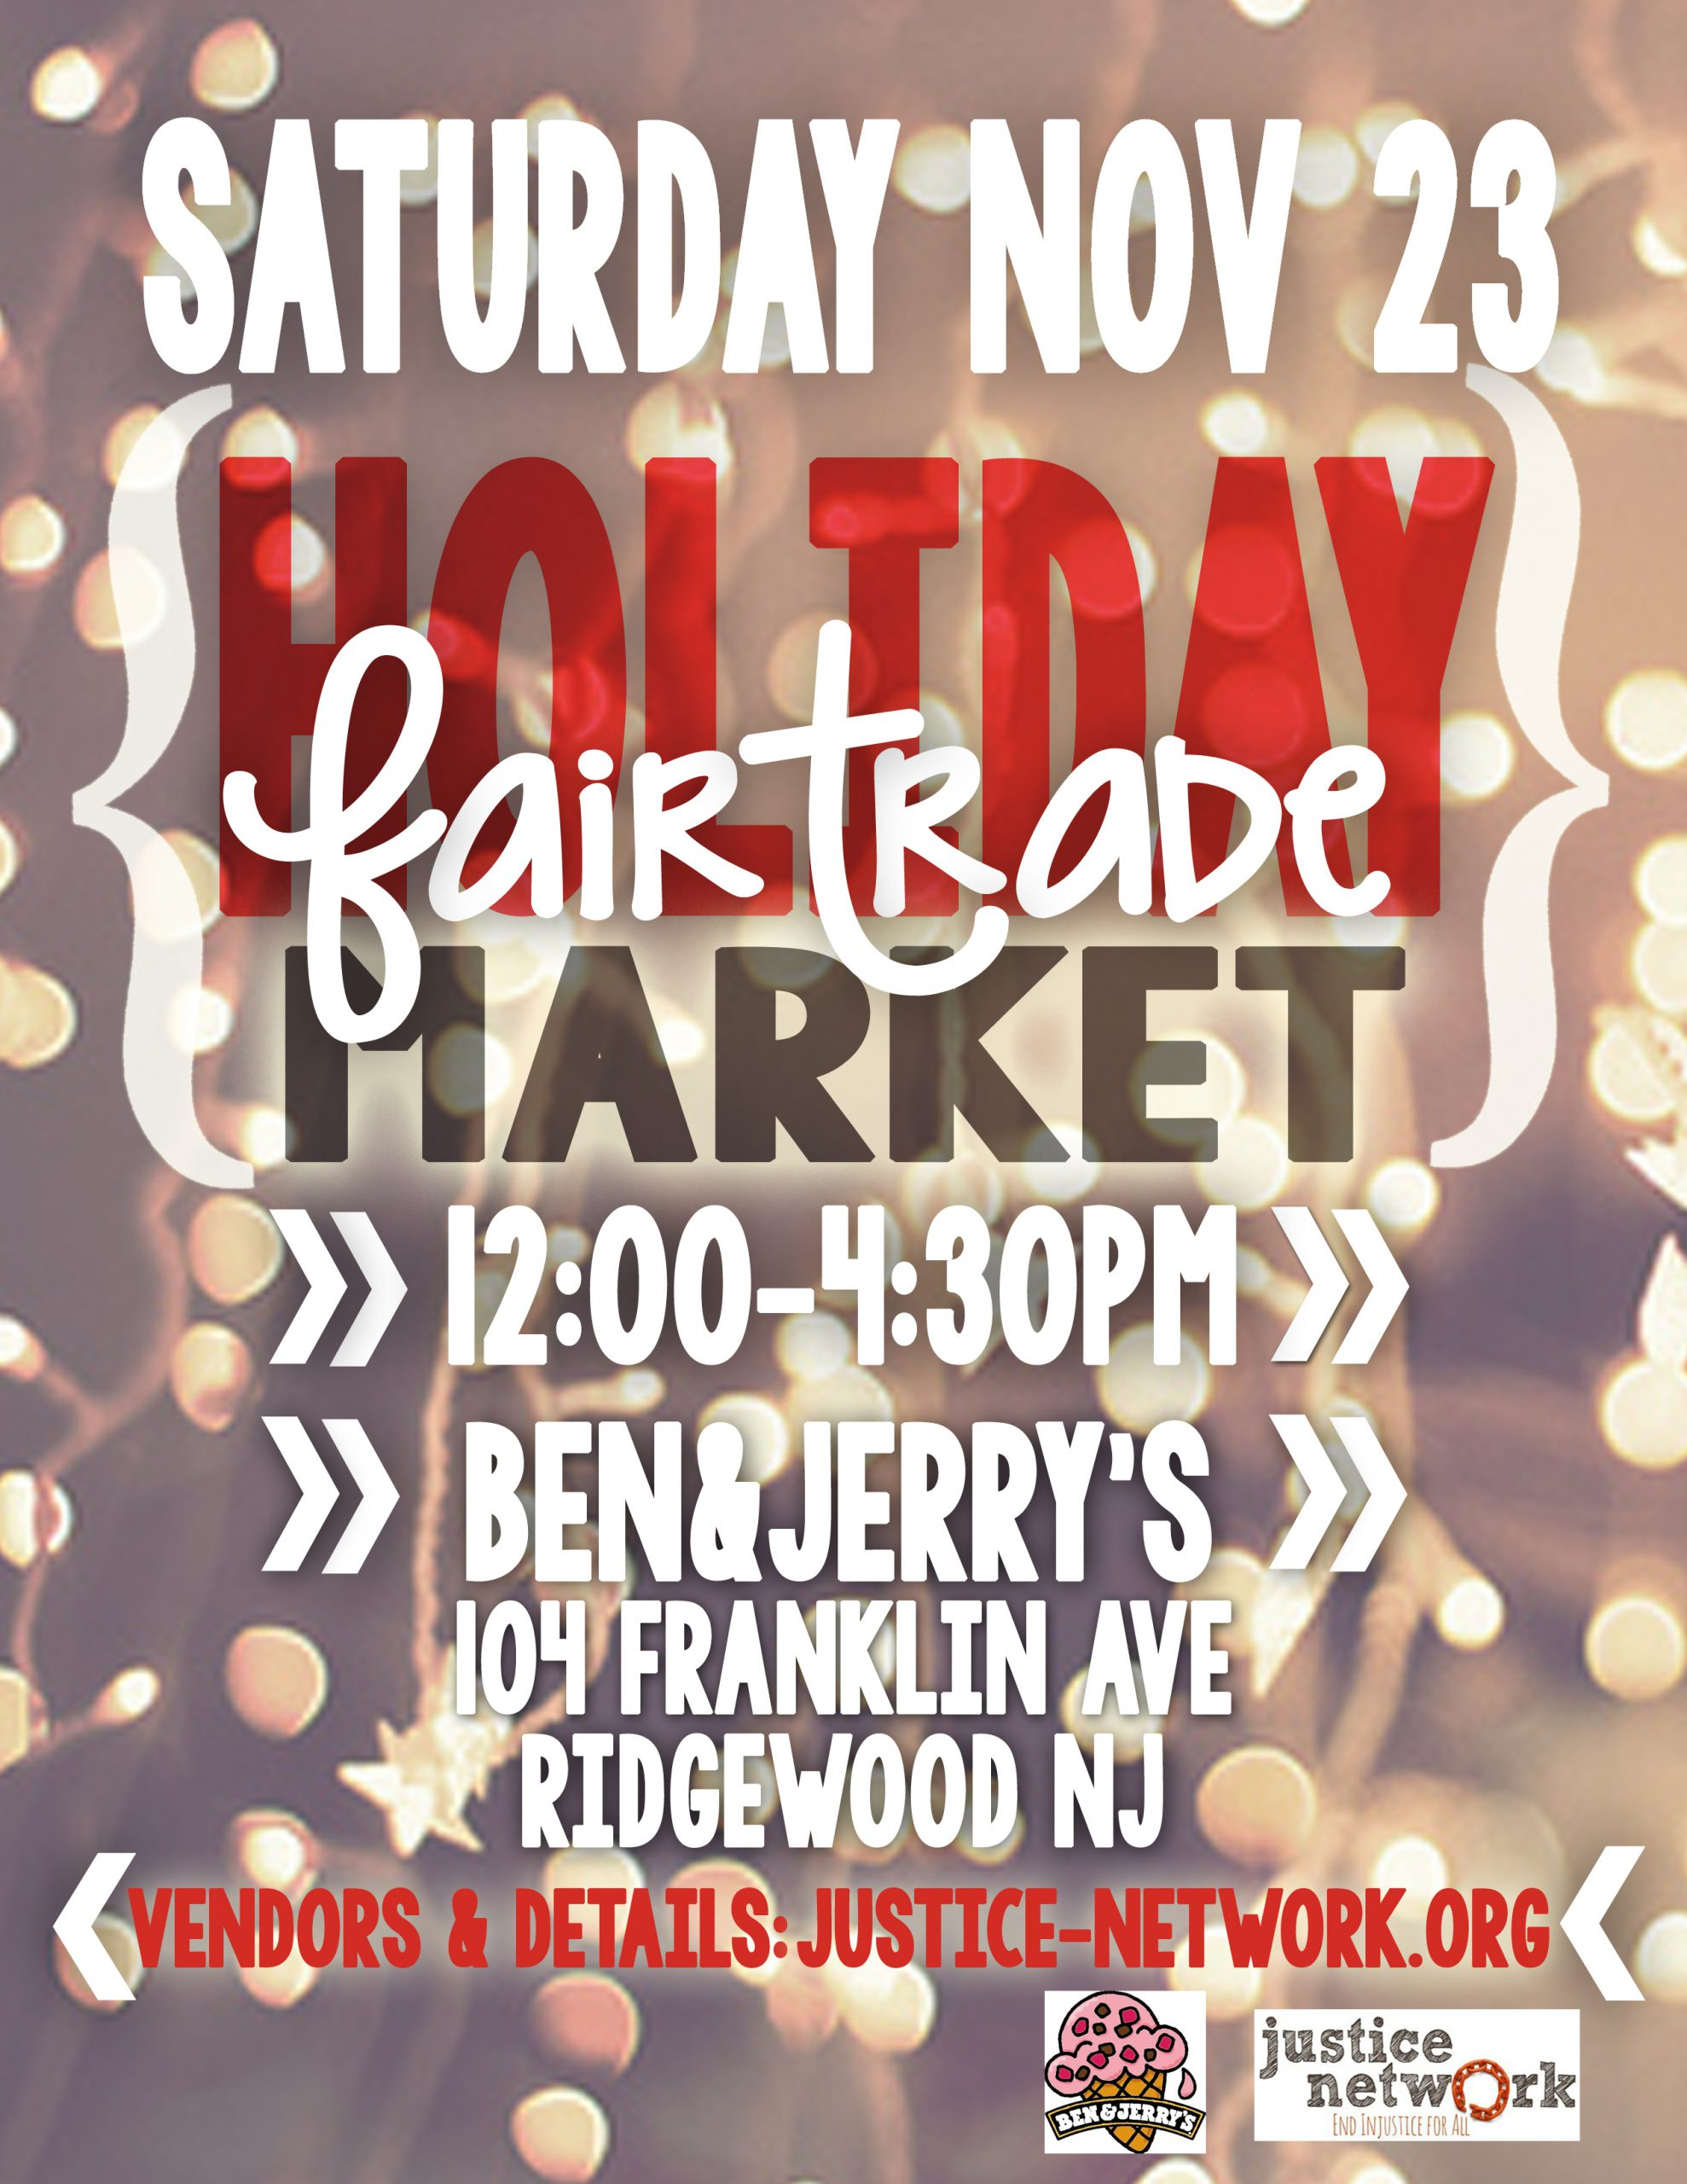 Holiday Fair Trade Market